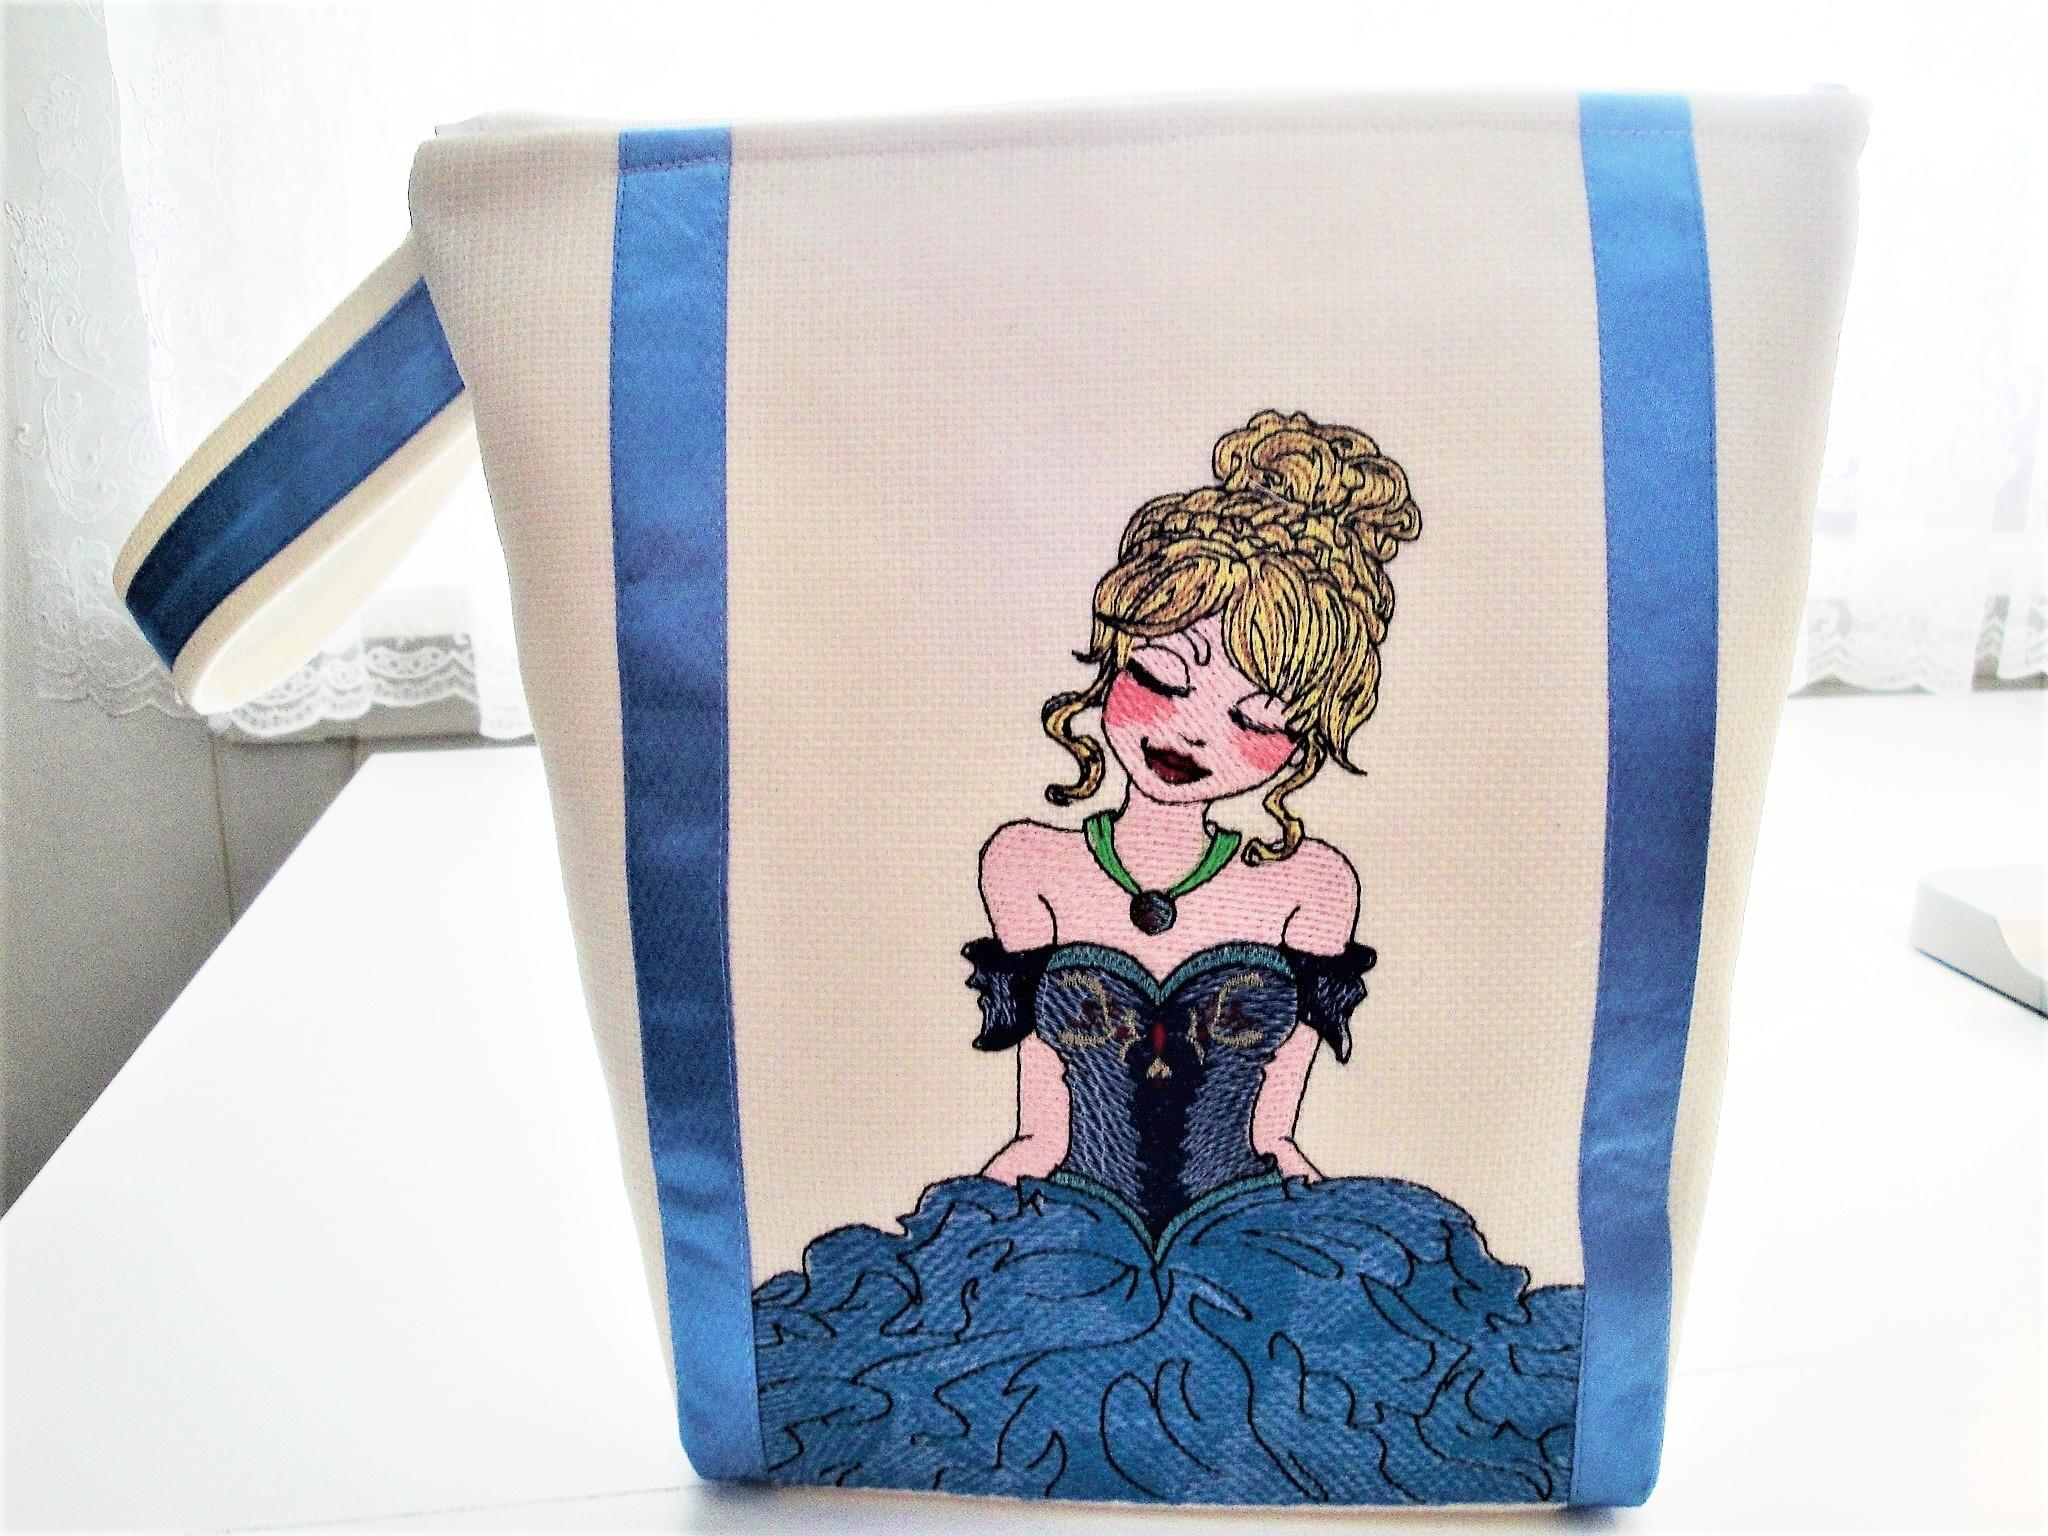 Embroidered bag with Princess design